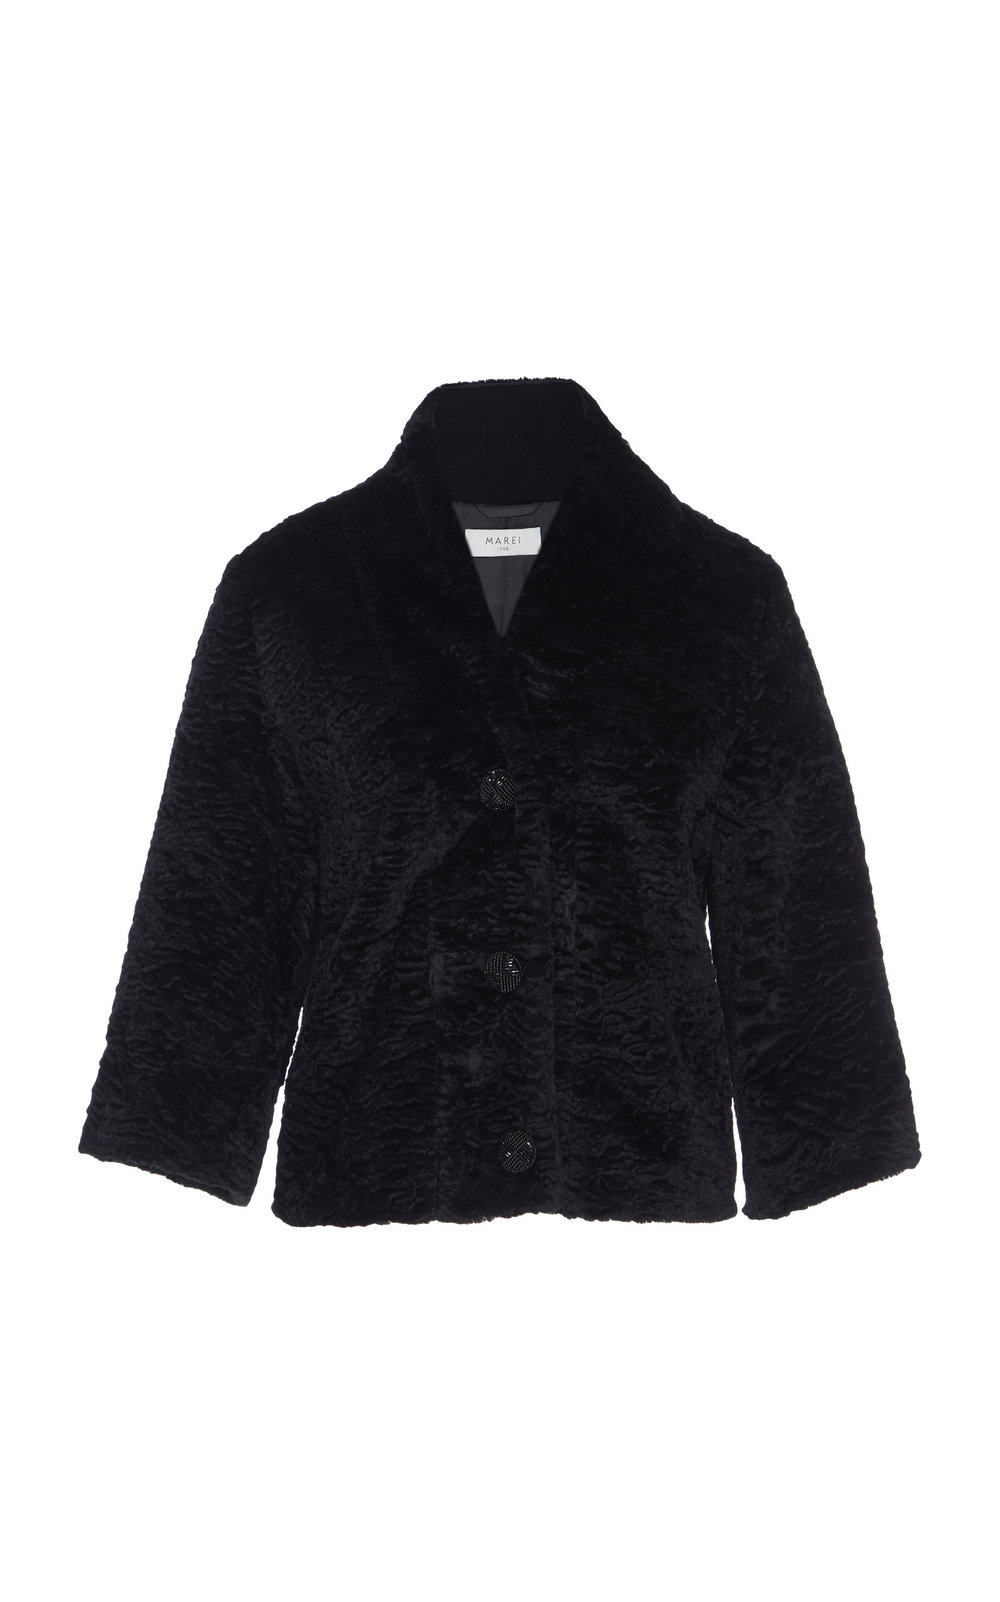 Aliella Textured Faux Fur Jacket - BLACK  Made from sumptuous textured faux fur, this jacket is an ideal winter piece. Hitting just below the waist, it adds a touch of glamor to every outfit.